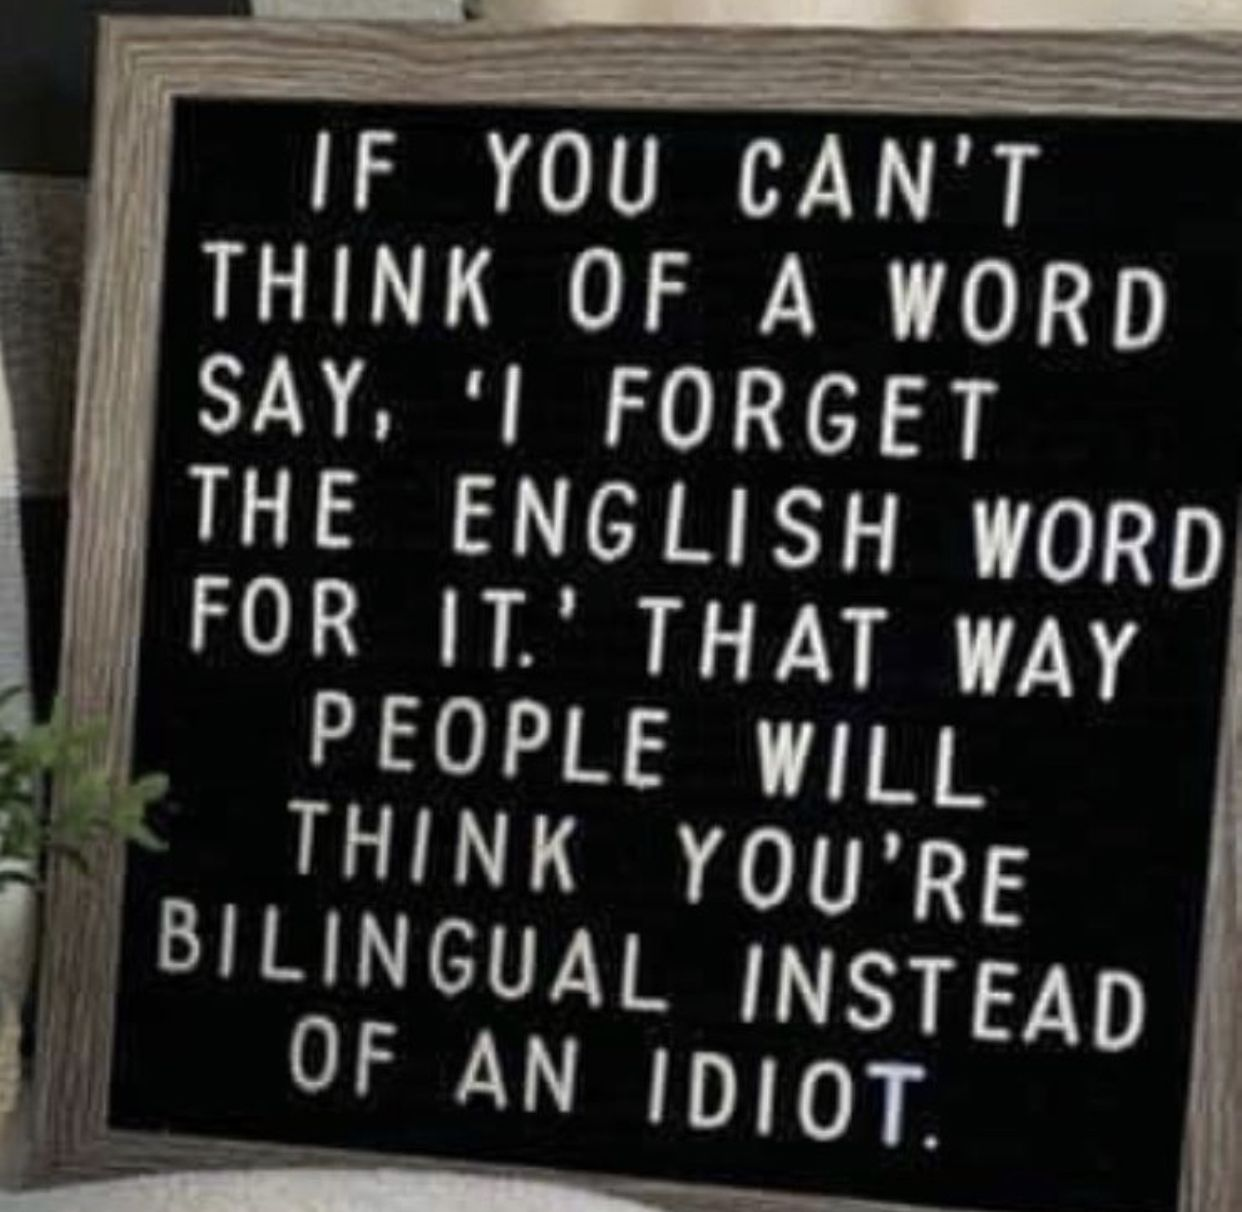 Pin By Joanne Marszal On Humor Quotes Funny Quotes Message Board Quotes Haha Funny